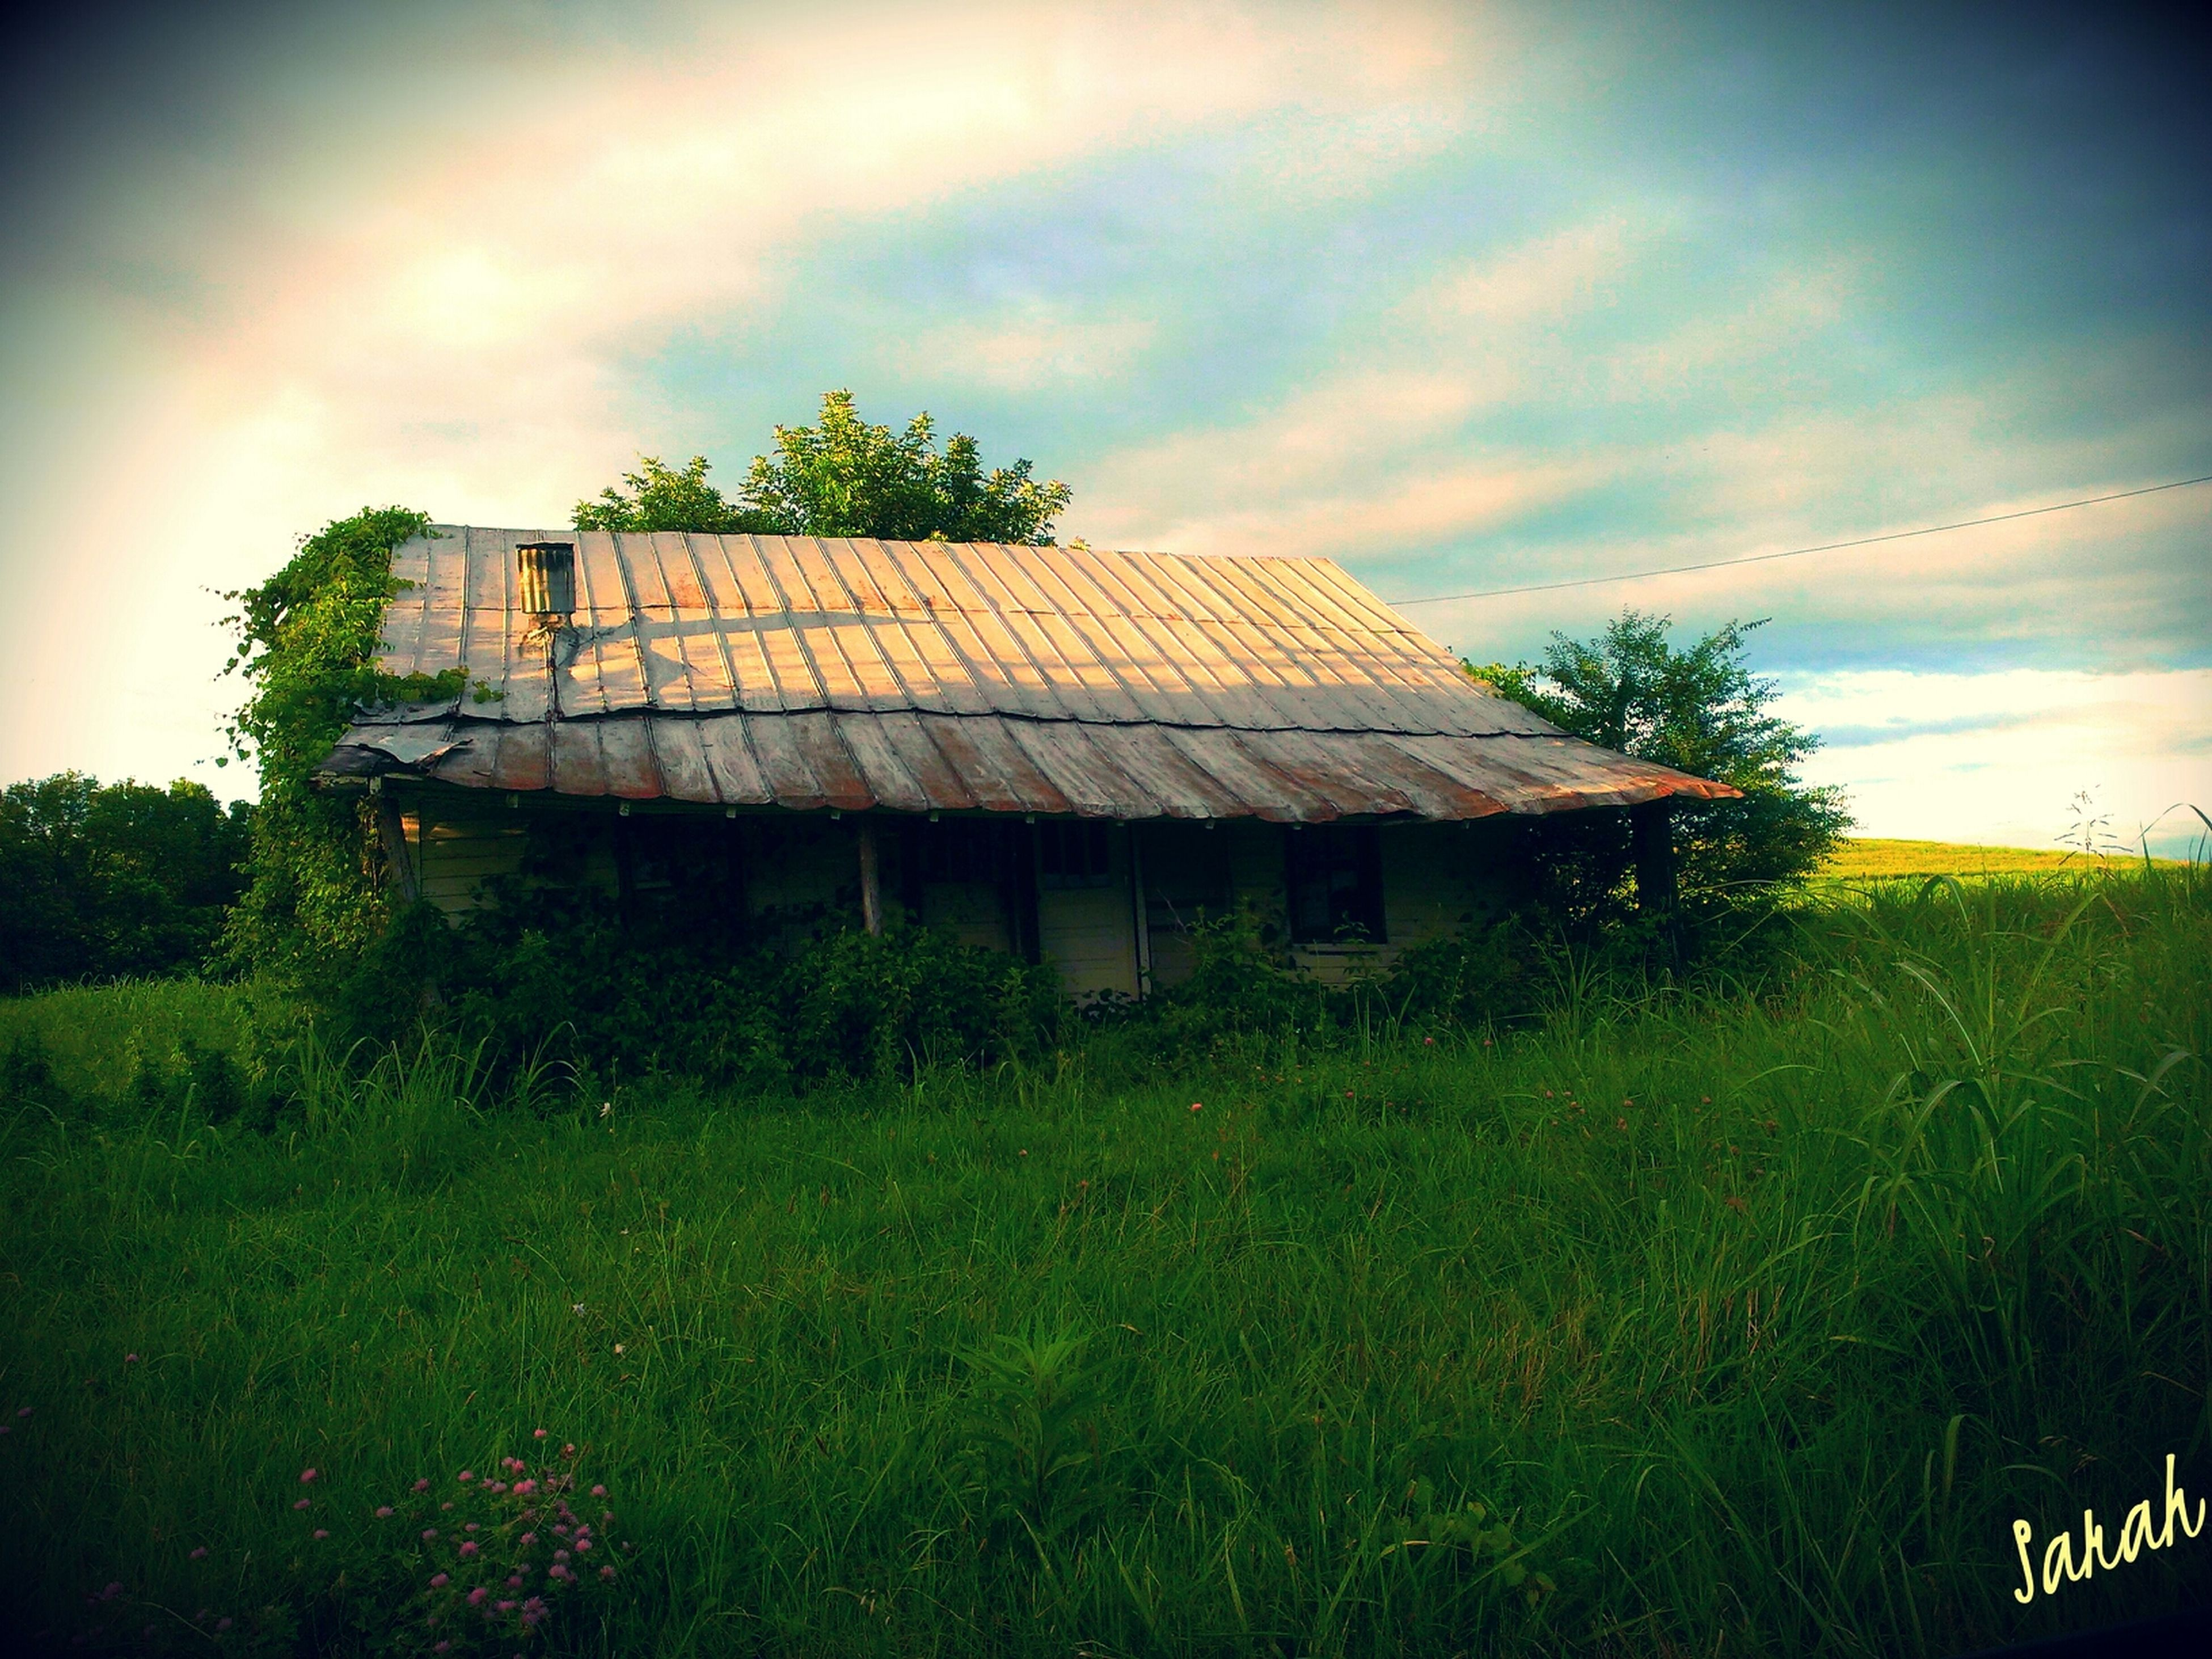 grass, built structure, architecture, building exterior, sky, field, house, cloud - sky, tree, grassy, barn, rural scene, growth, green color, nature, plant, cloud, cloudy, old, landscape